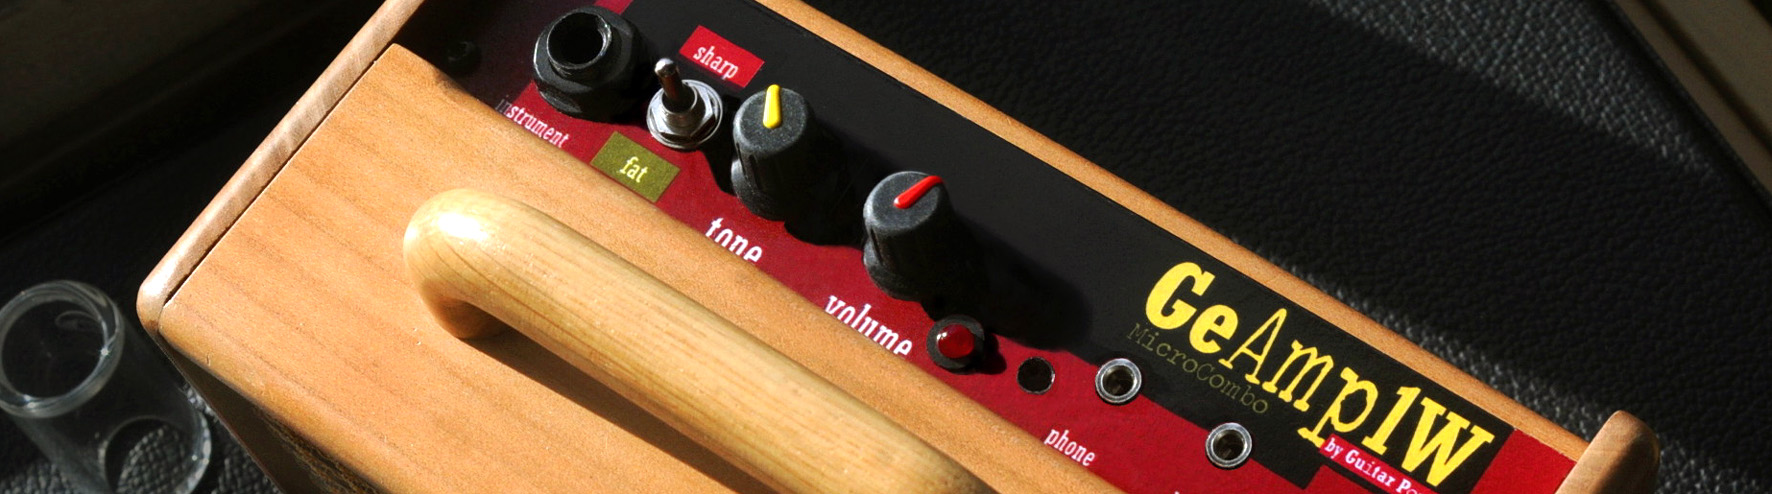 MicroCombo1W by Guitarpoppa.com, a portable germanium micro-amp for harmonica and guitar